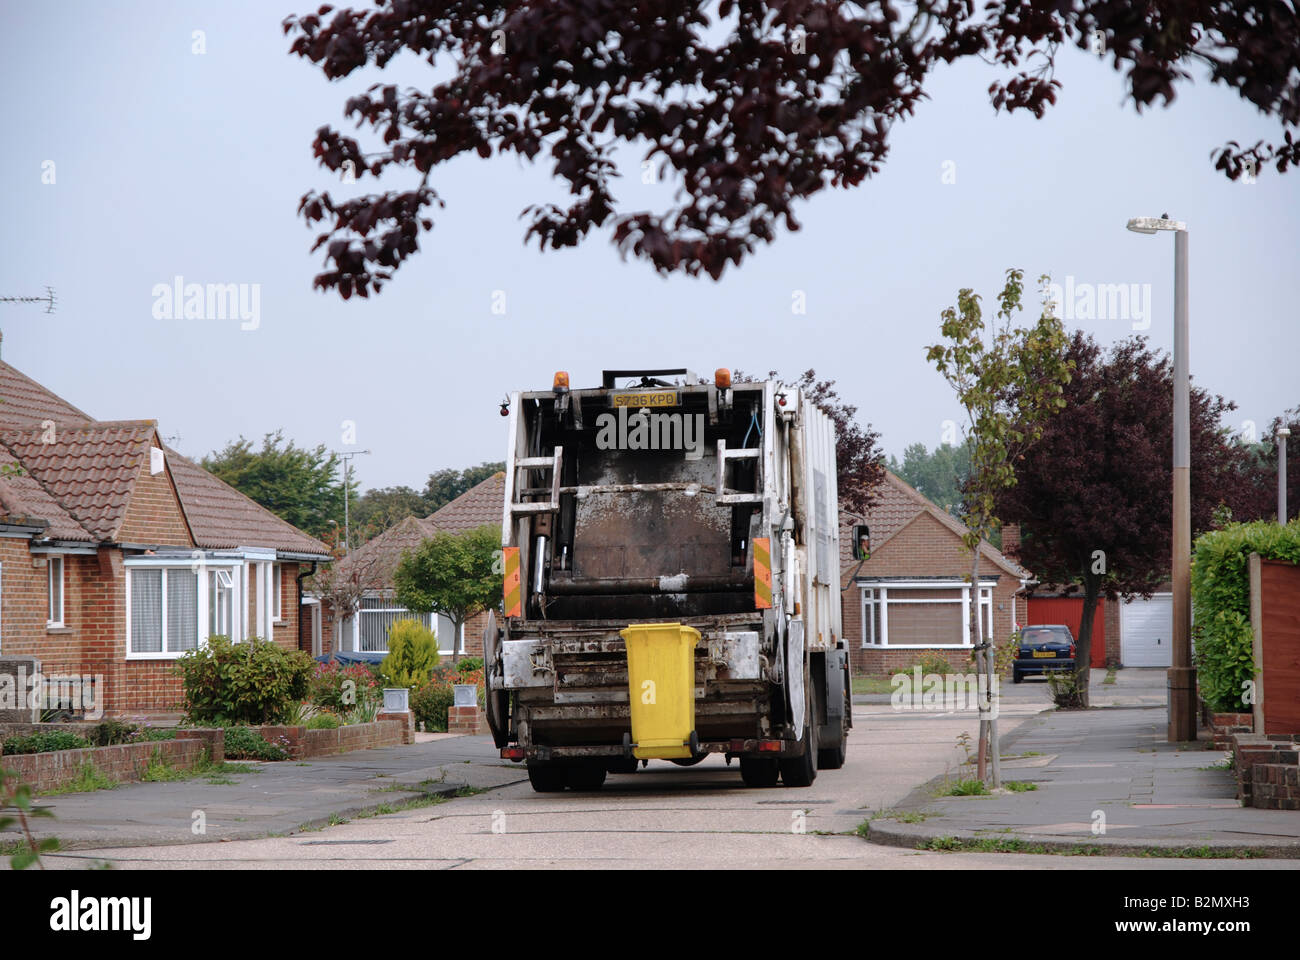 dustcart collecting rubbish for landfill Worthing Adur area West Sussex reversing down a residential close - Stock Image